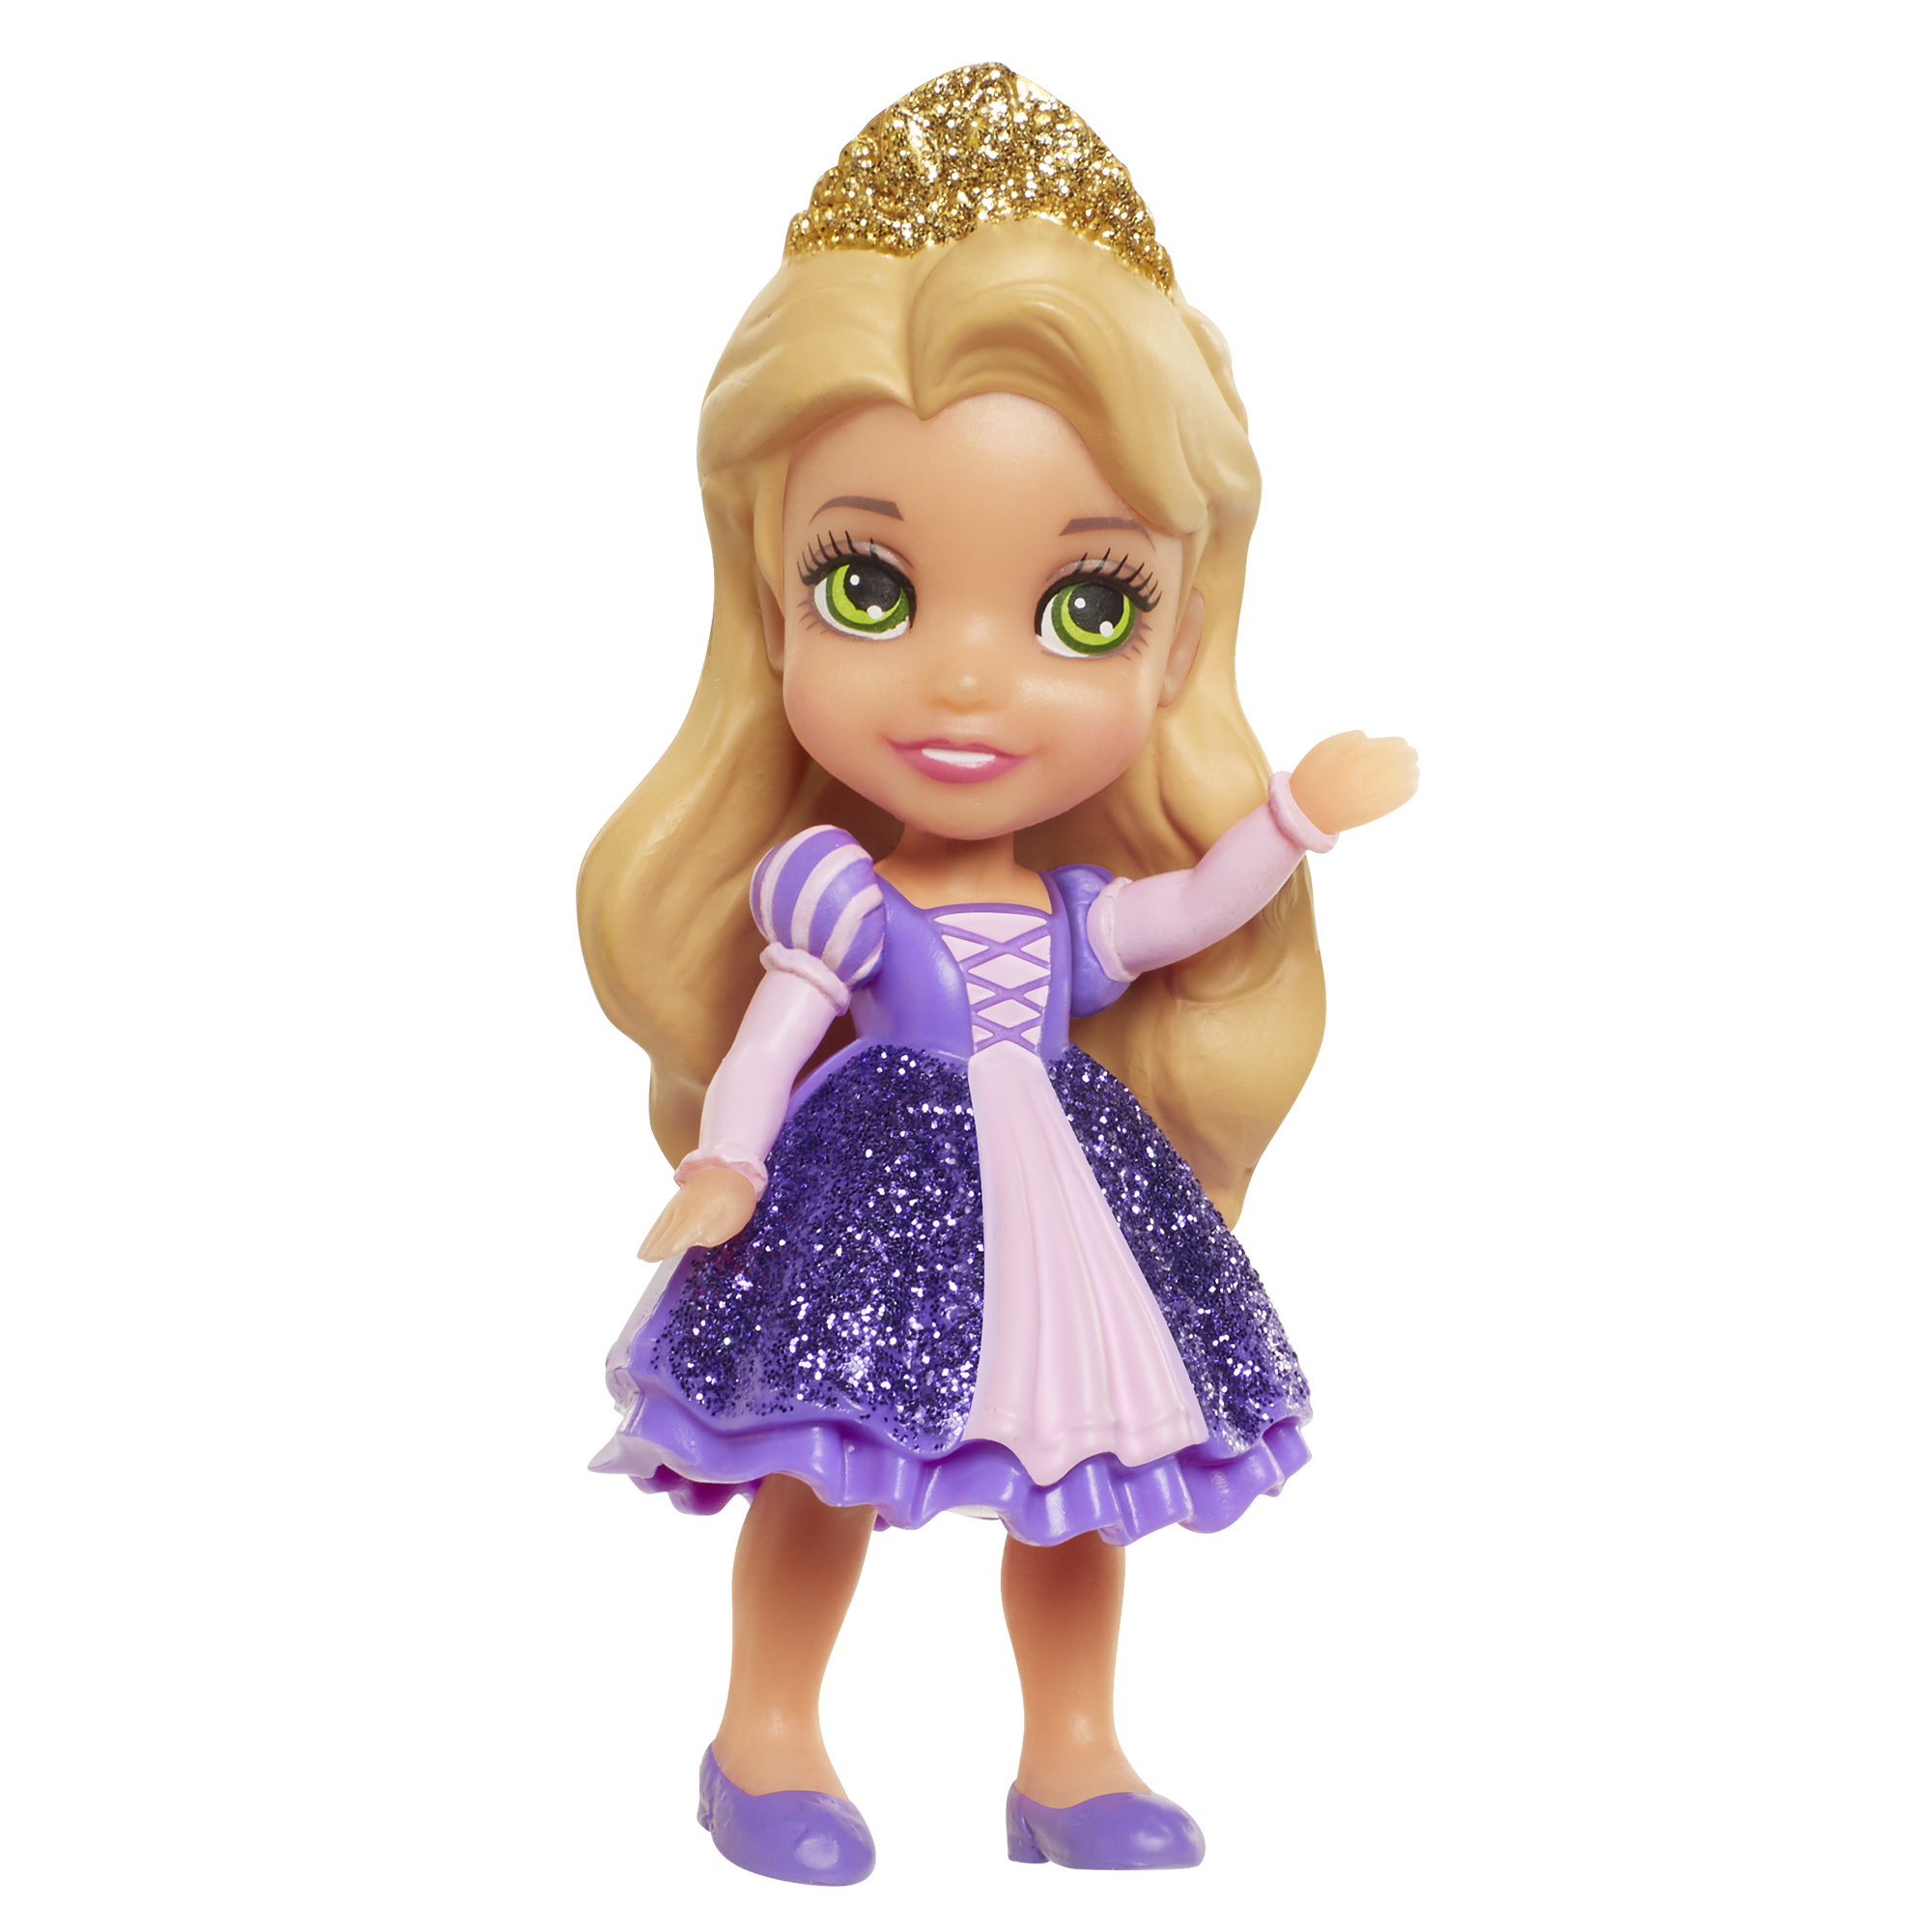 Rapunzel 3 inch Mini Toddlers Doll Disney Princess